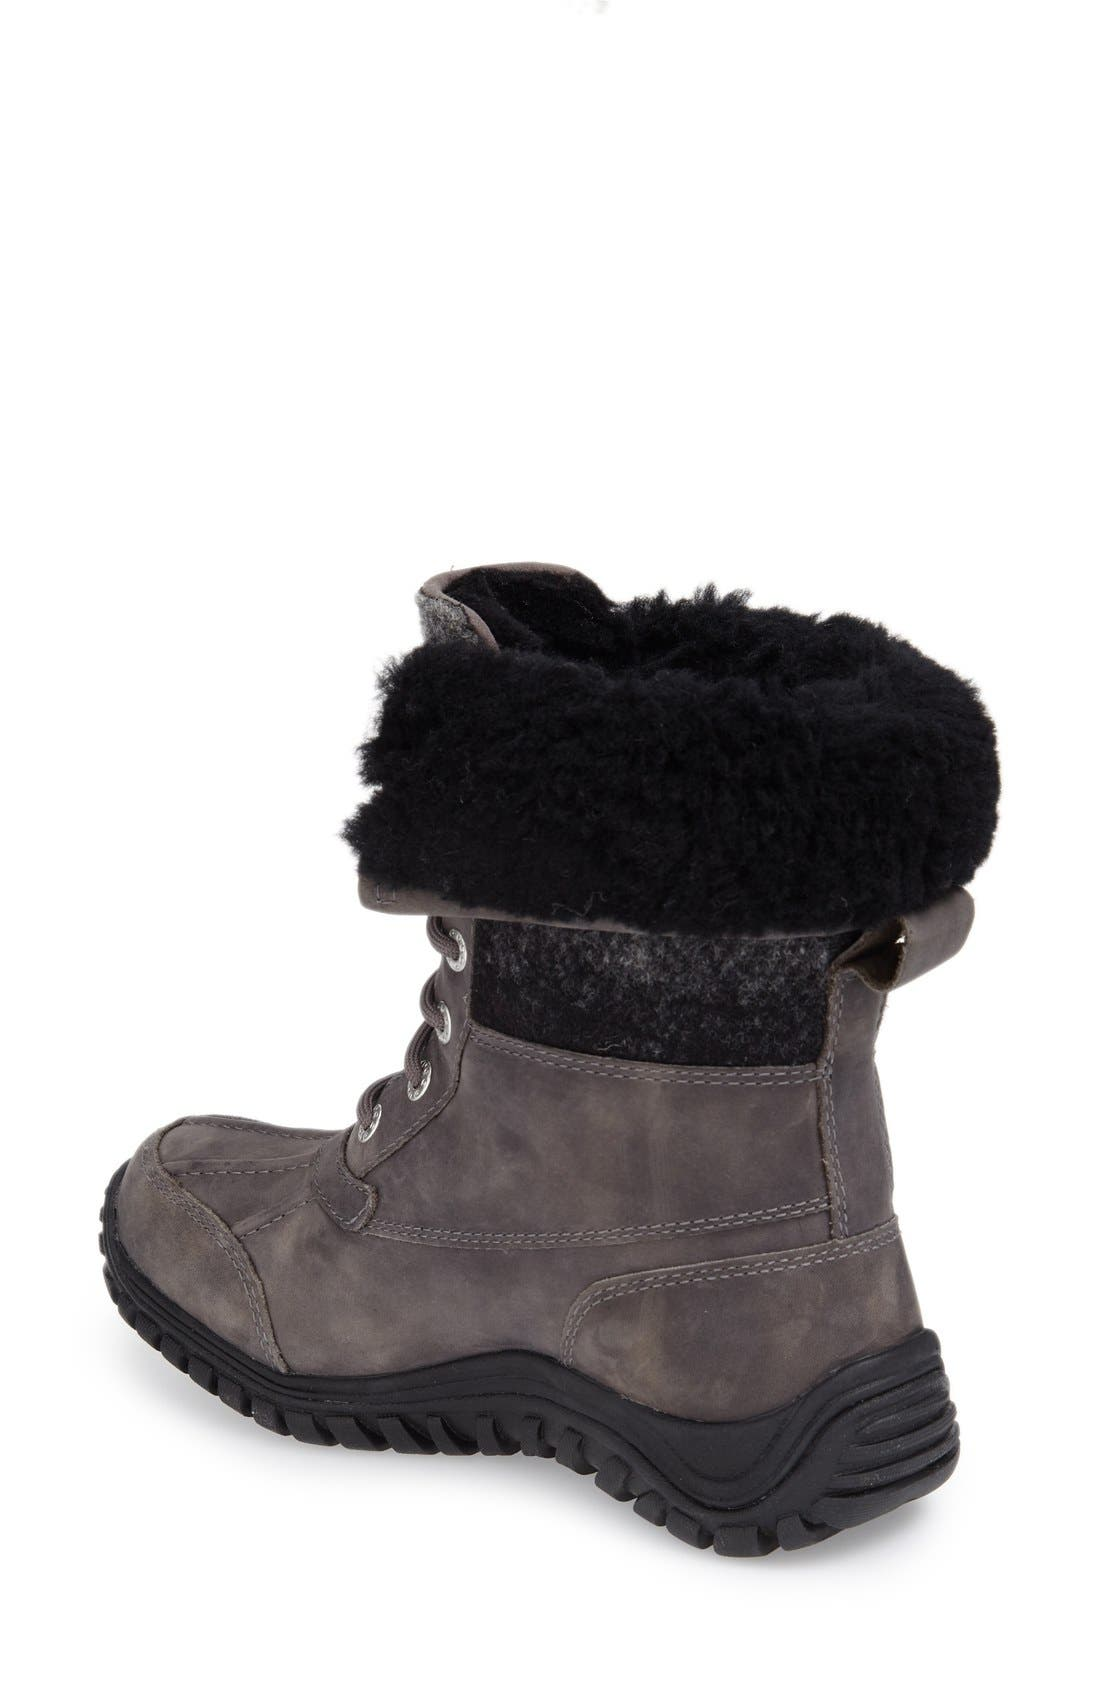 UGG<SUP>®</SUP>,                             Adirondack Waterproof Insulated Winter Boot,                             Alternate thumbnail 2, color,                             020